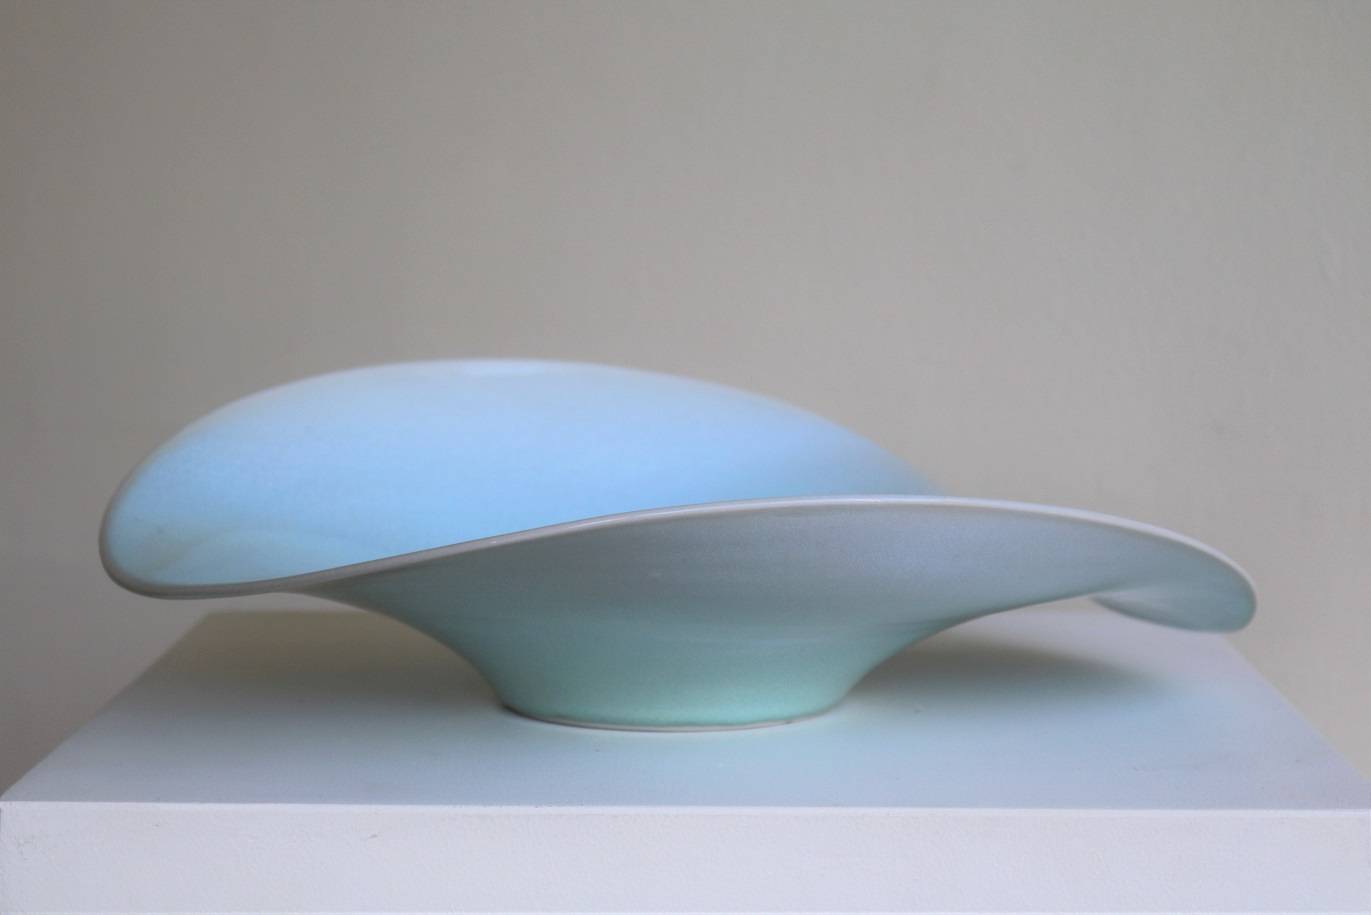 Brian Keyte,  Tarn,  stoneware, chun and blue celadon glazes, H10.5 x W38 x D34.5cm, 2018 AVAILABLE